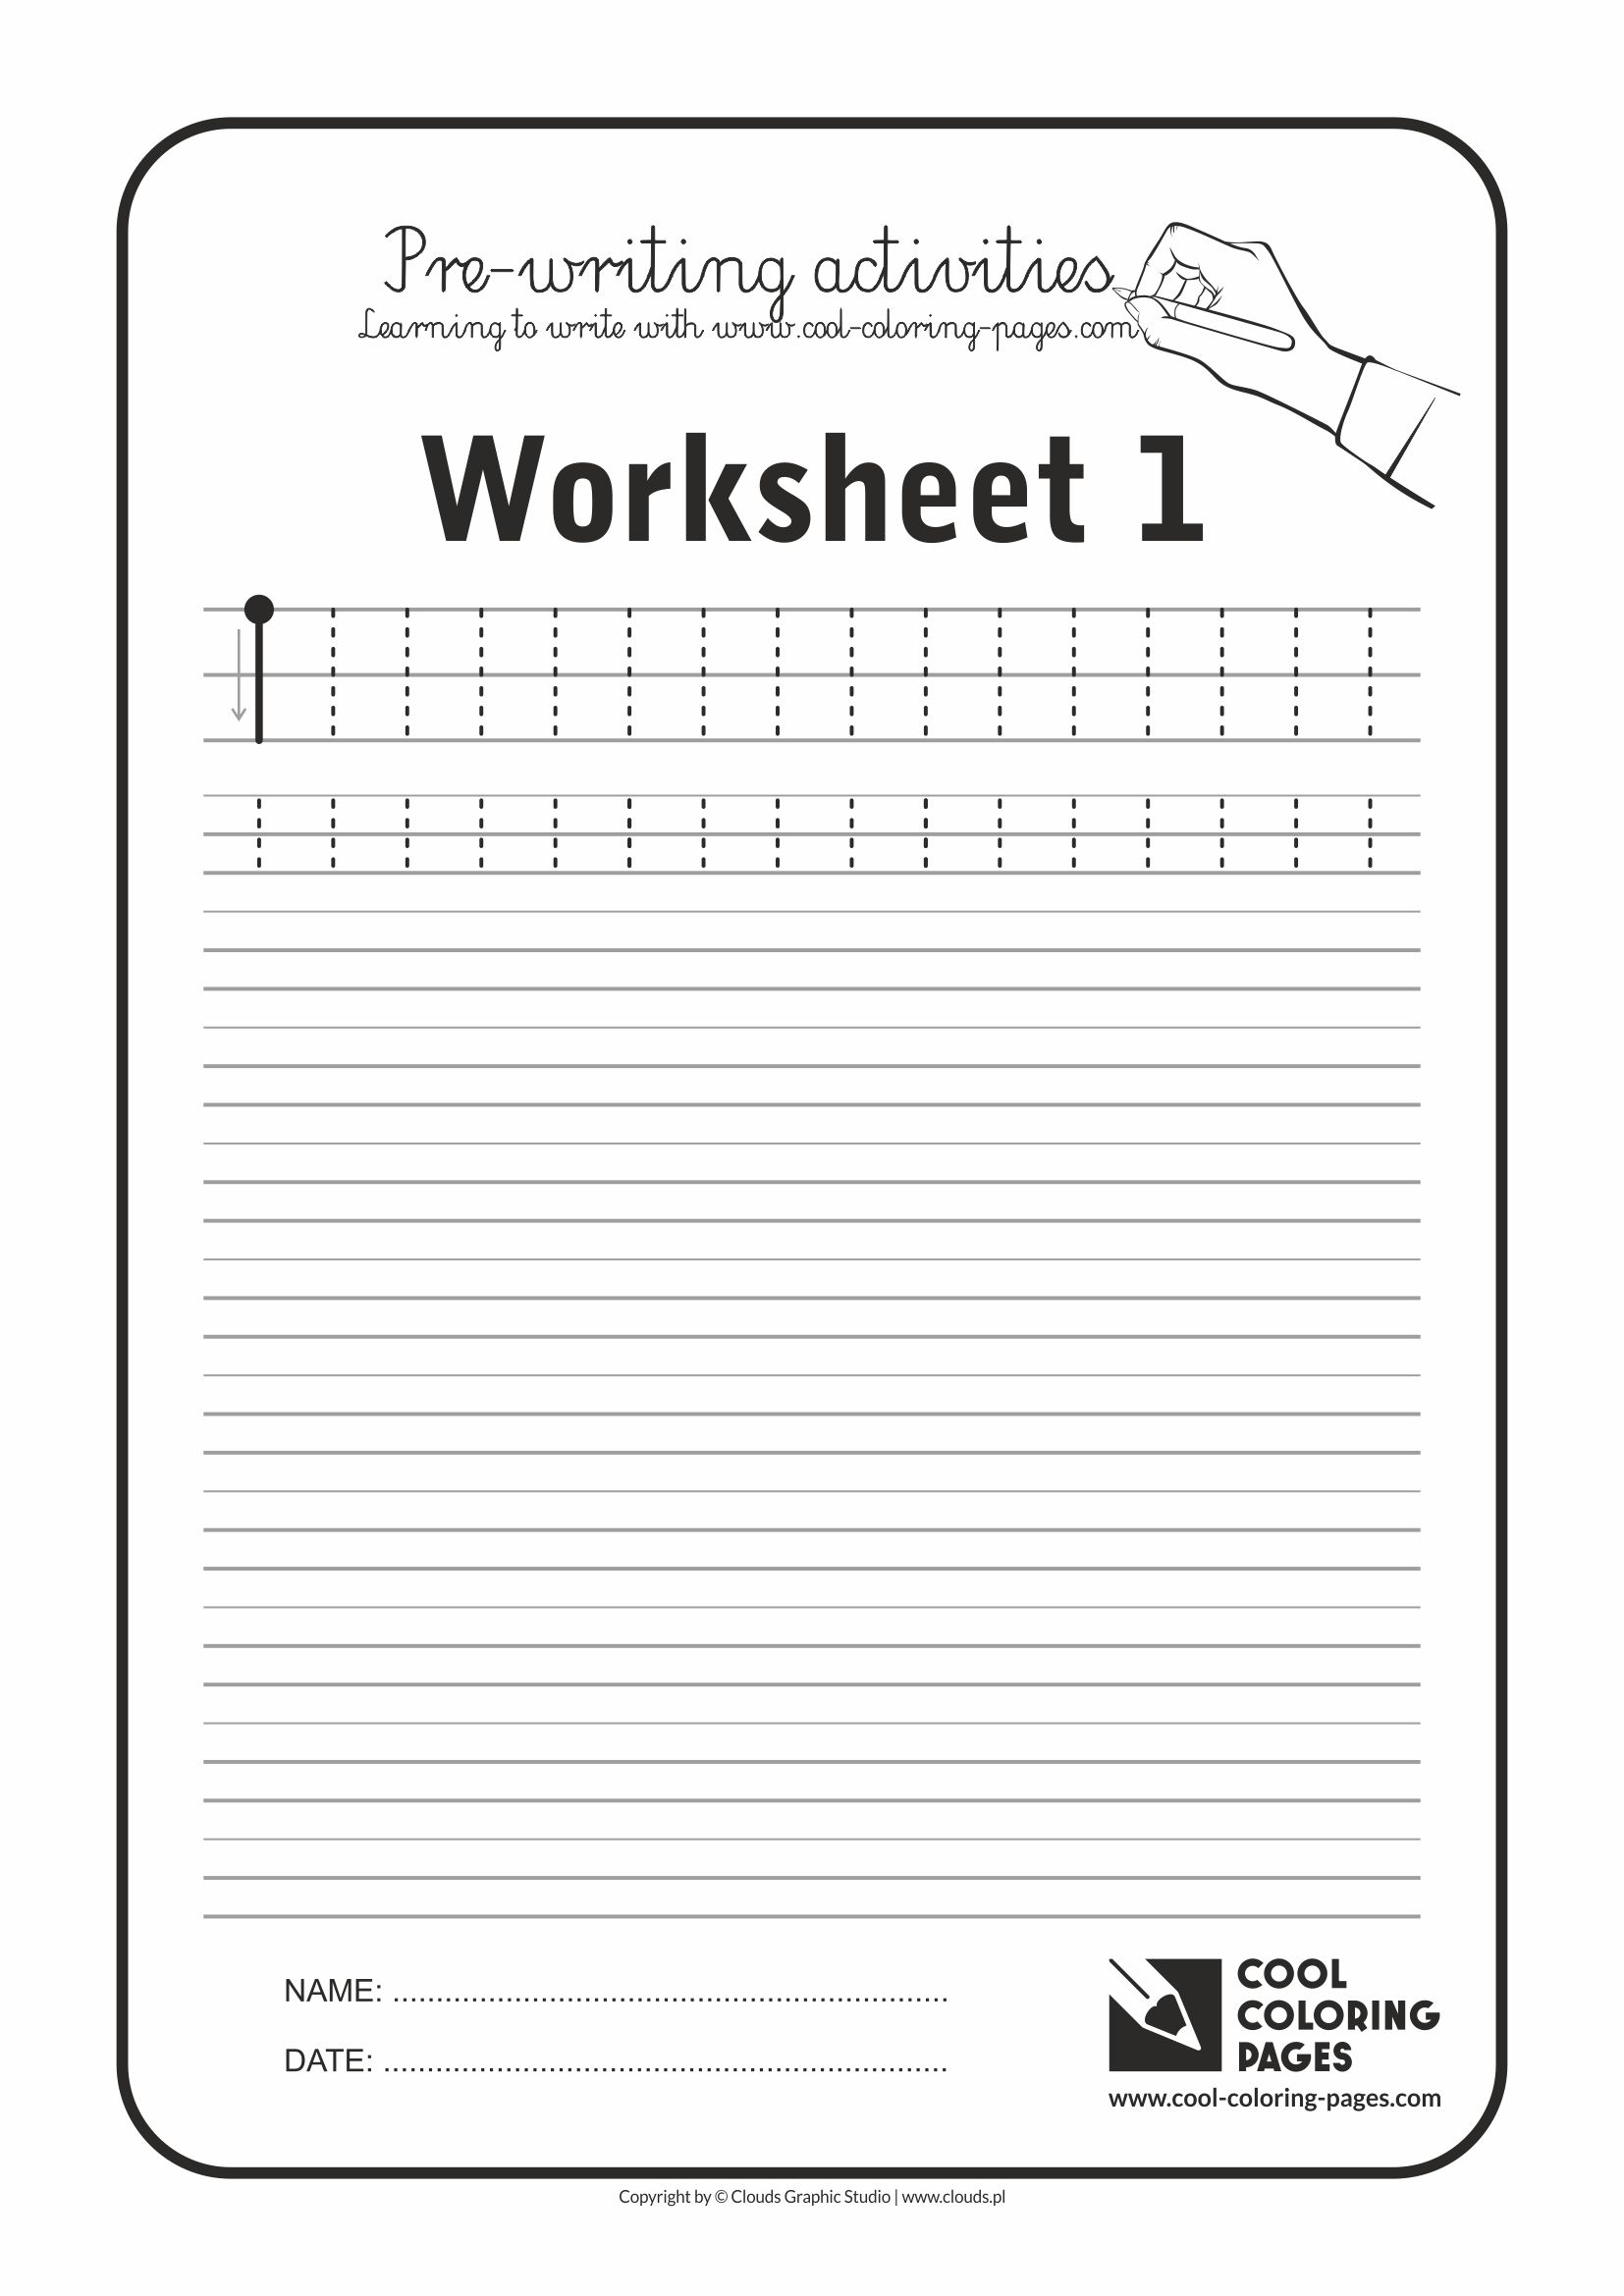 Cool Coloring Pages / Pre-writing activities / Worksheet no.1